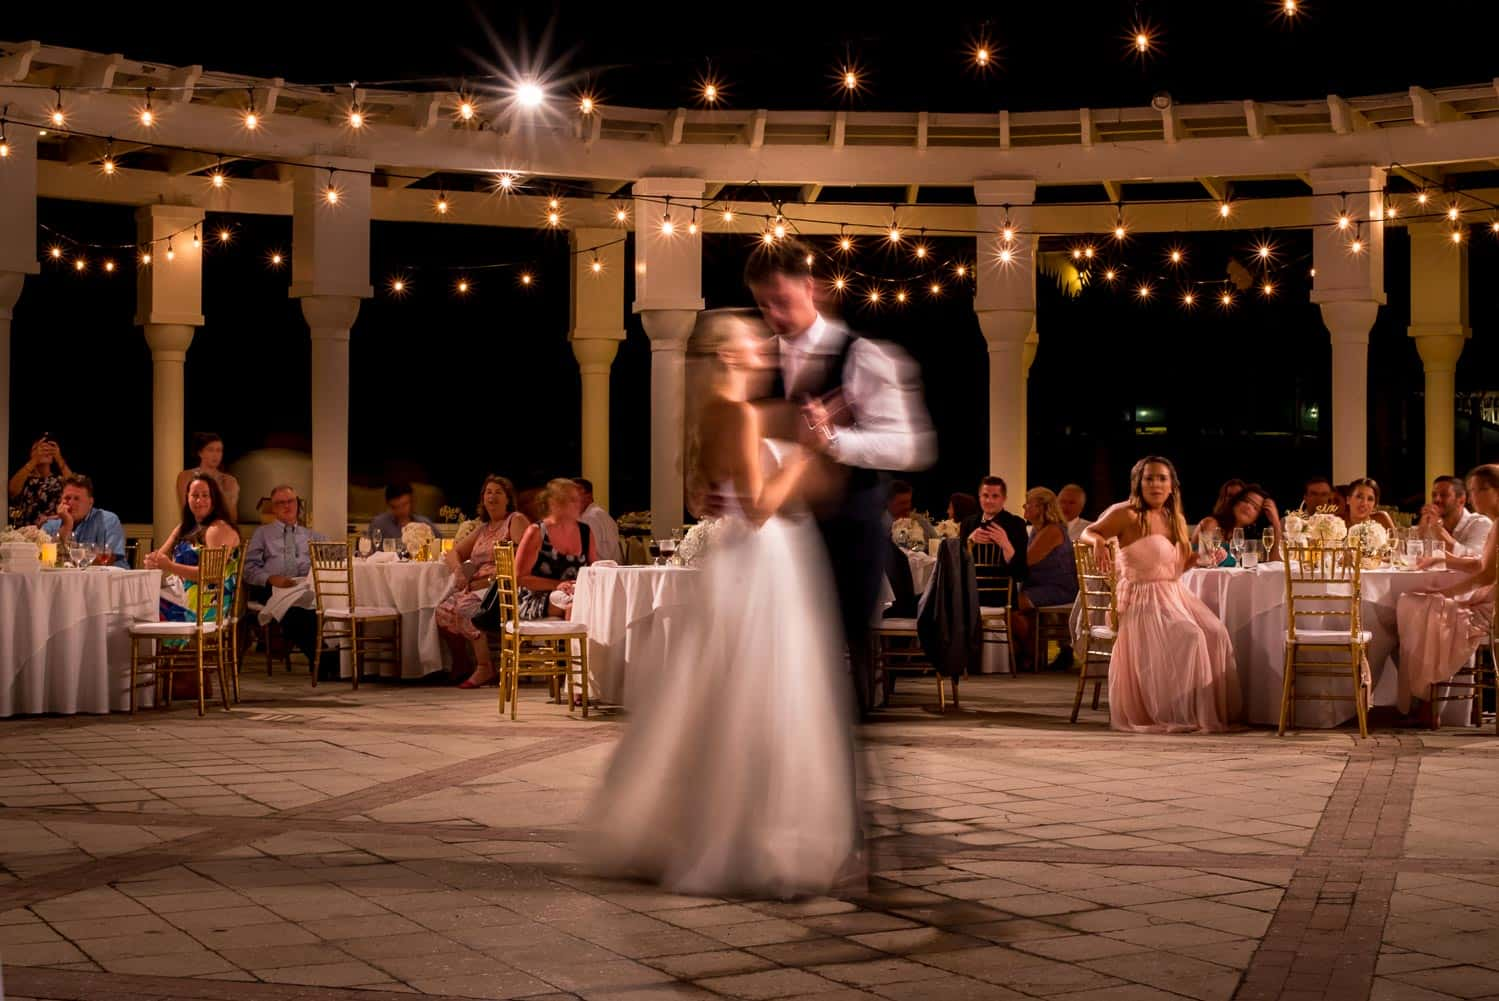 Creative motion blur wedding dance photo